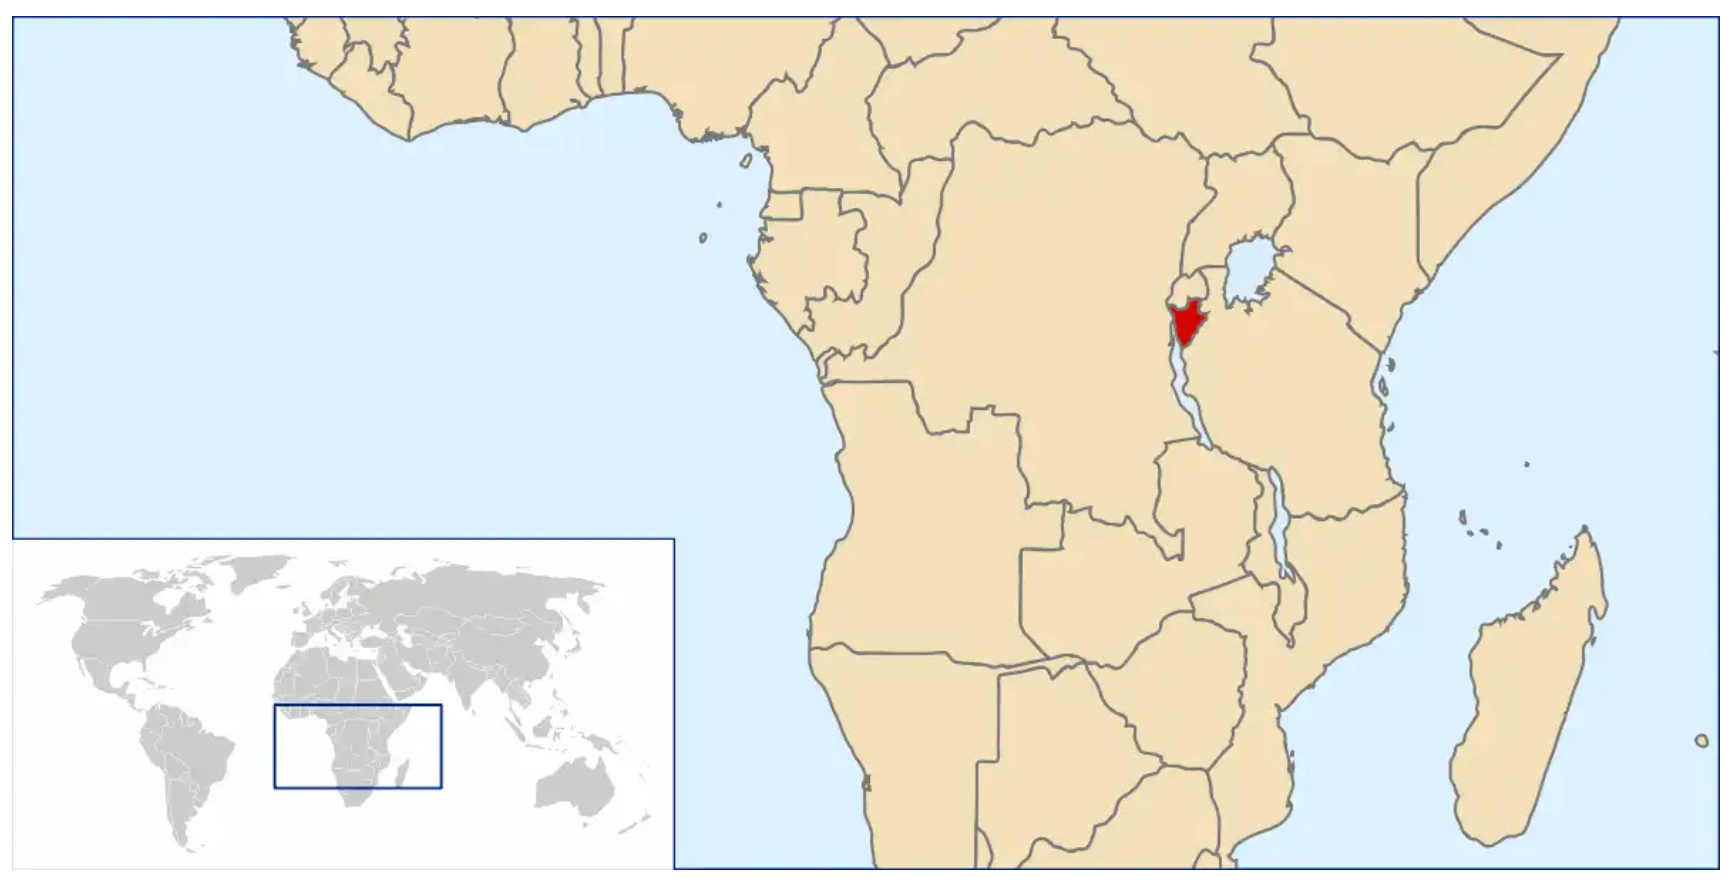 Burundi- The 9 countries of East Africa